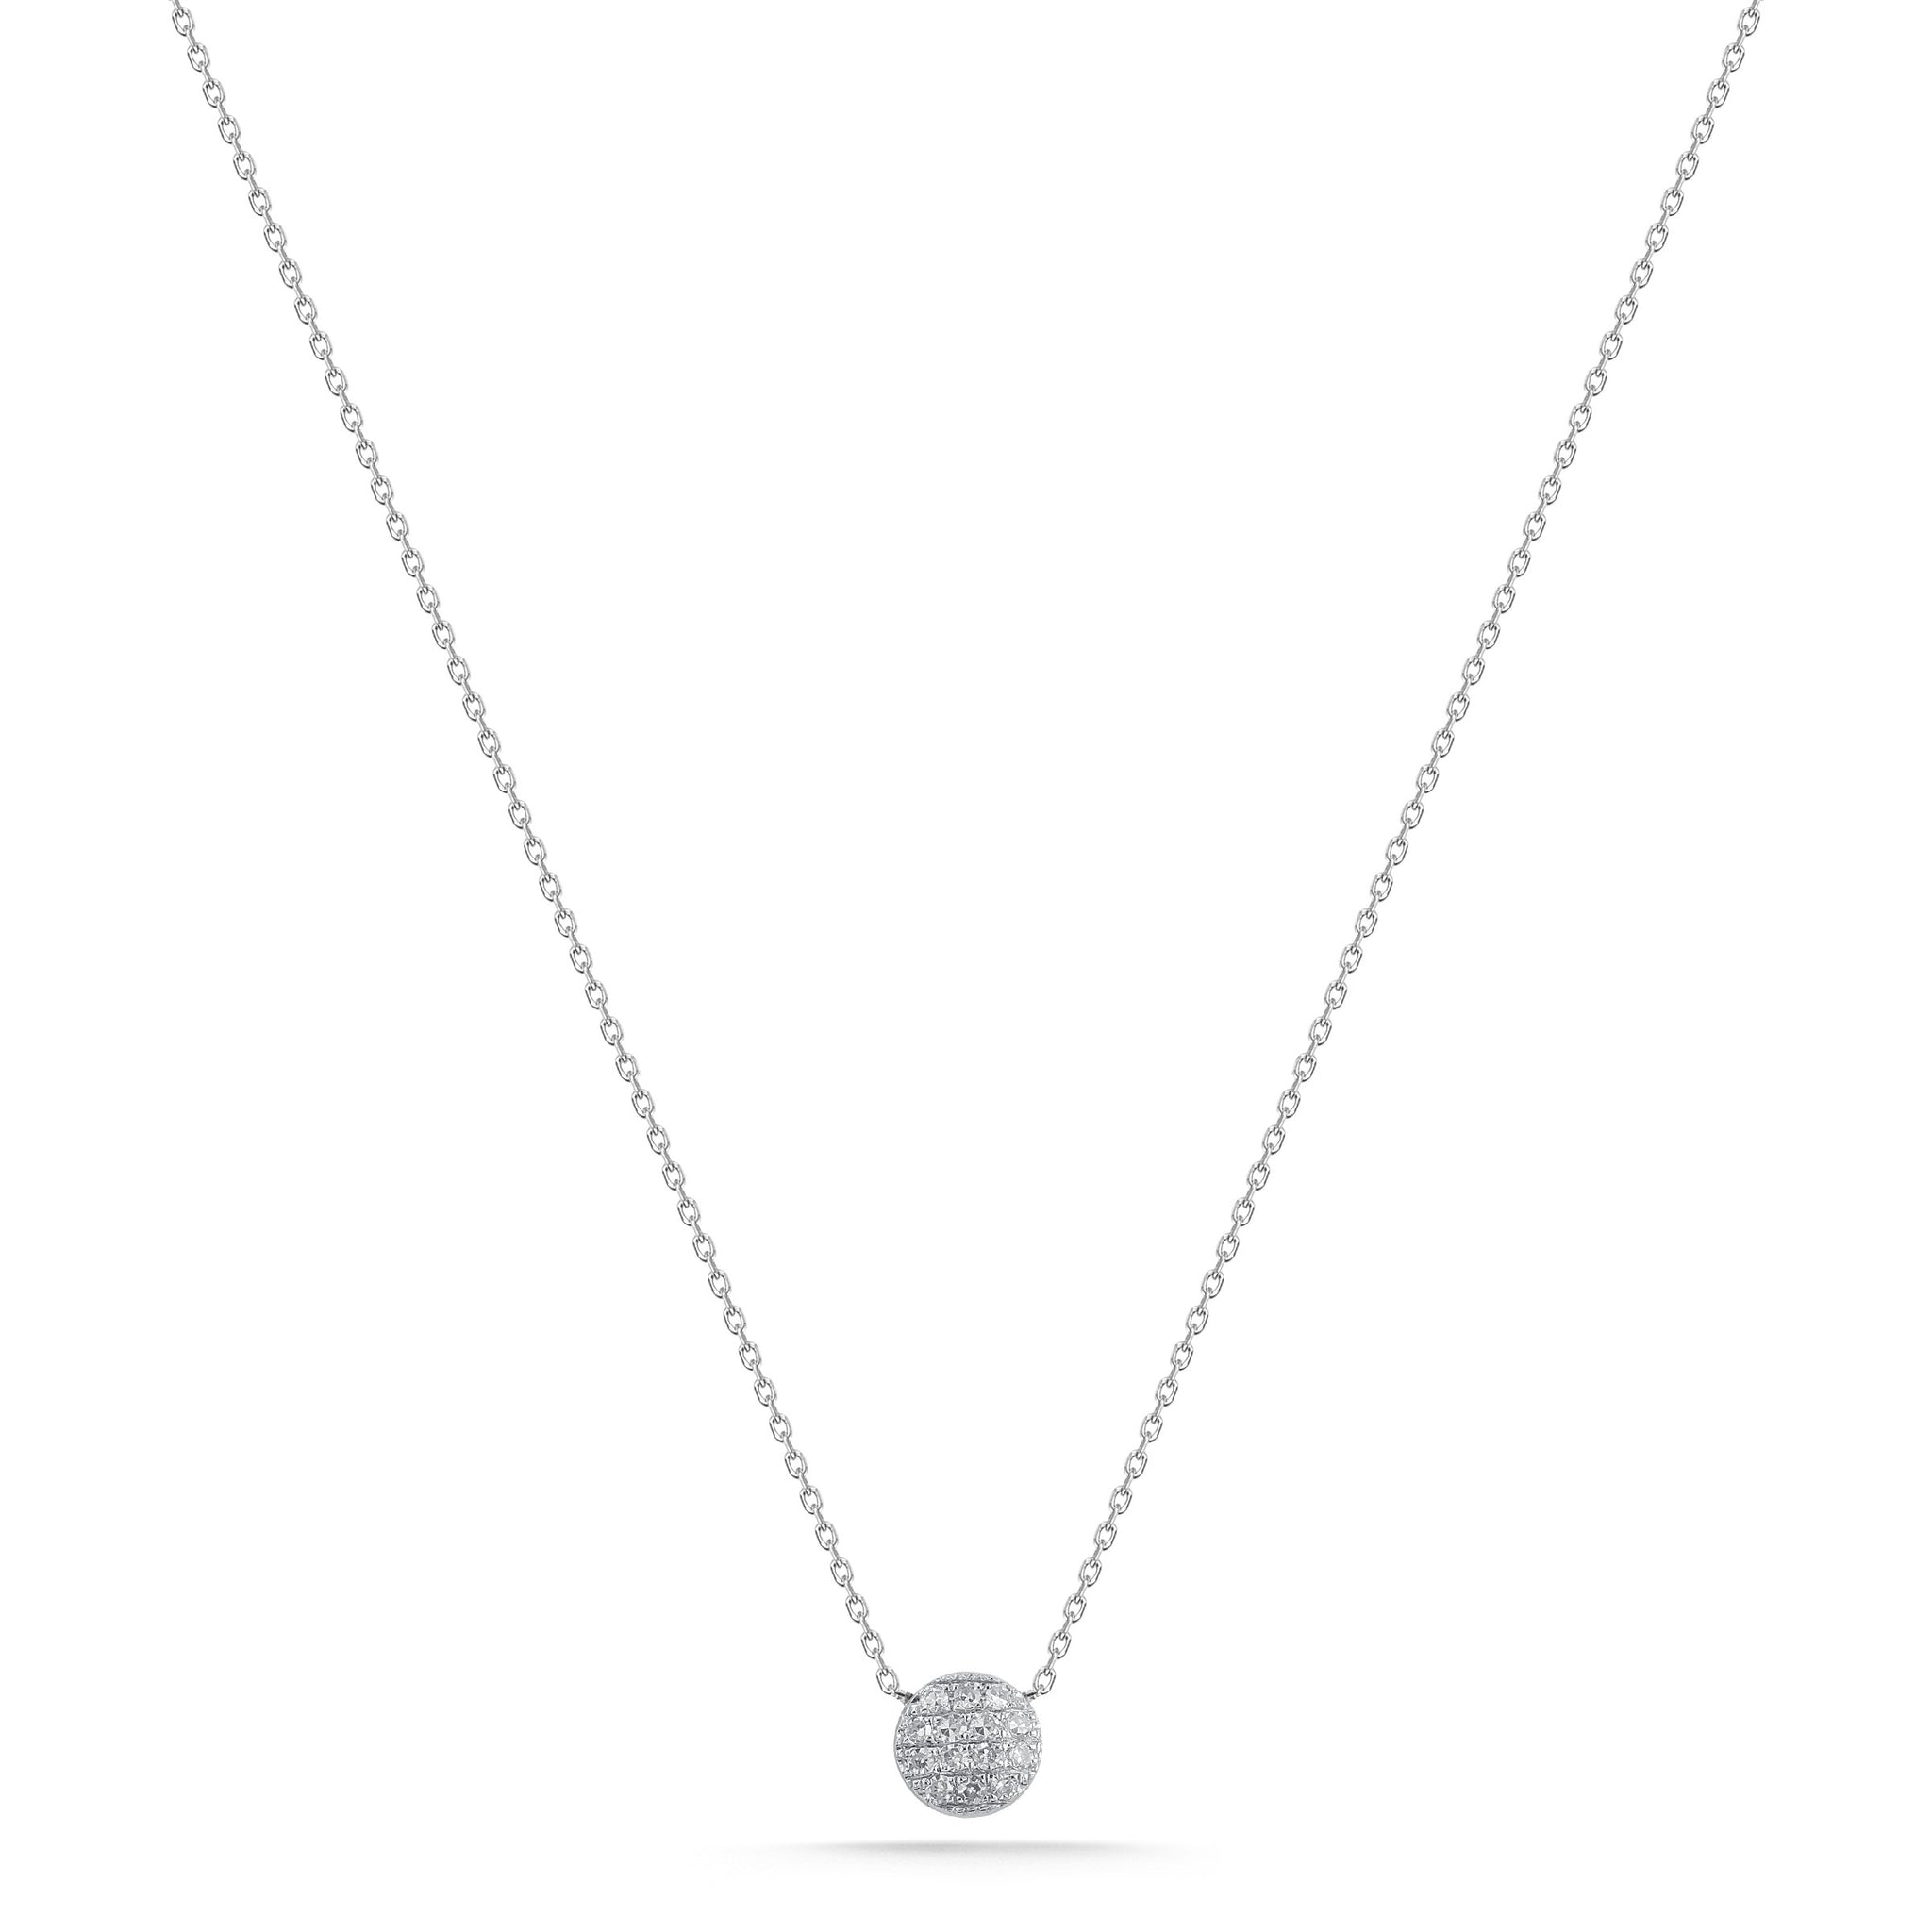 Lauren Joy 14K White Gold Mini Diamond Necklace